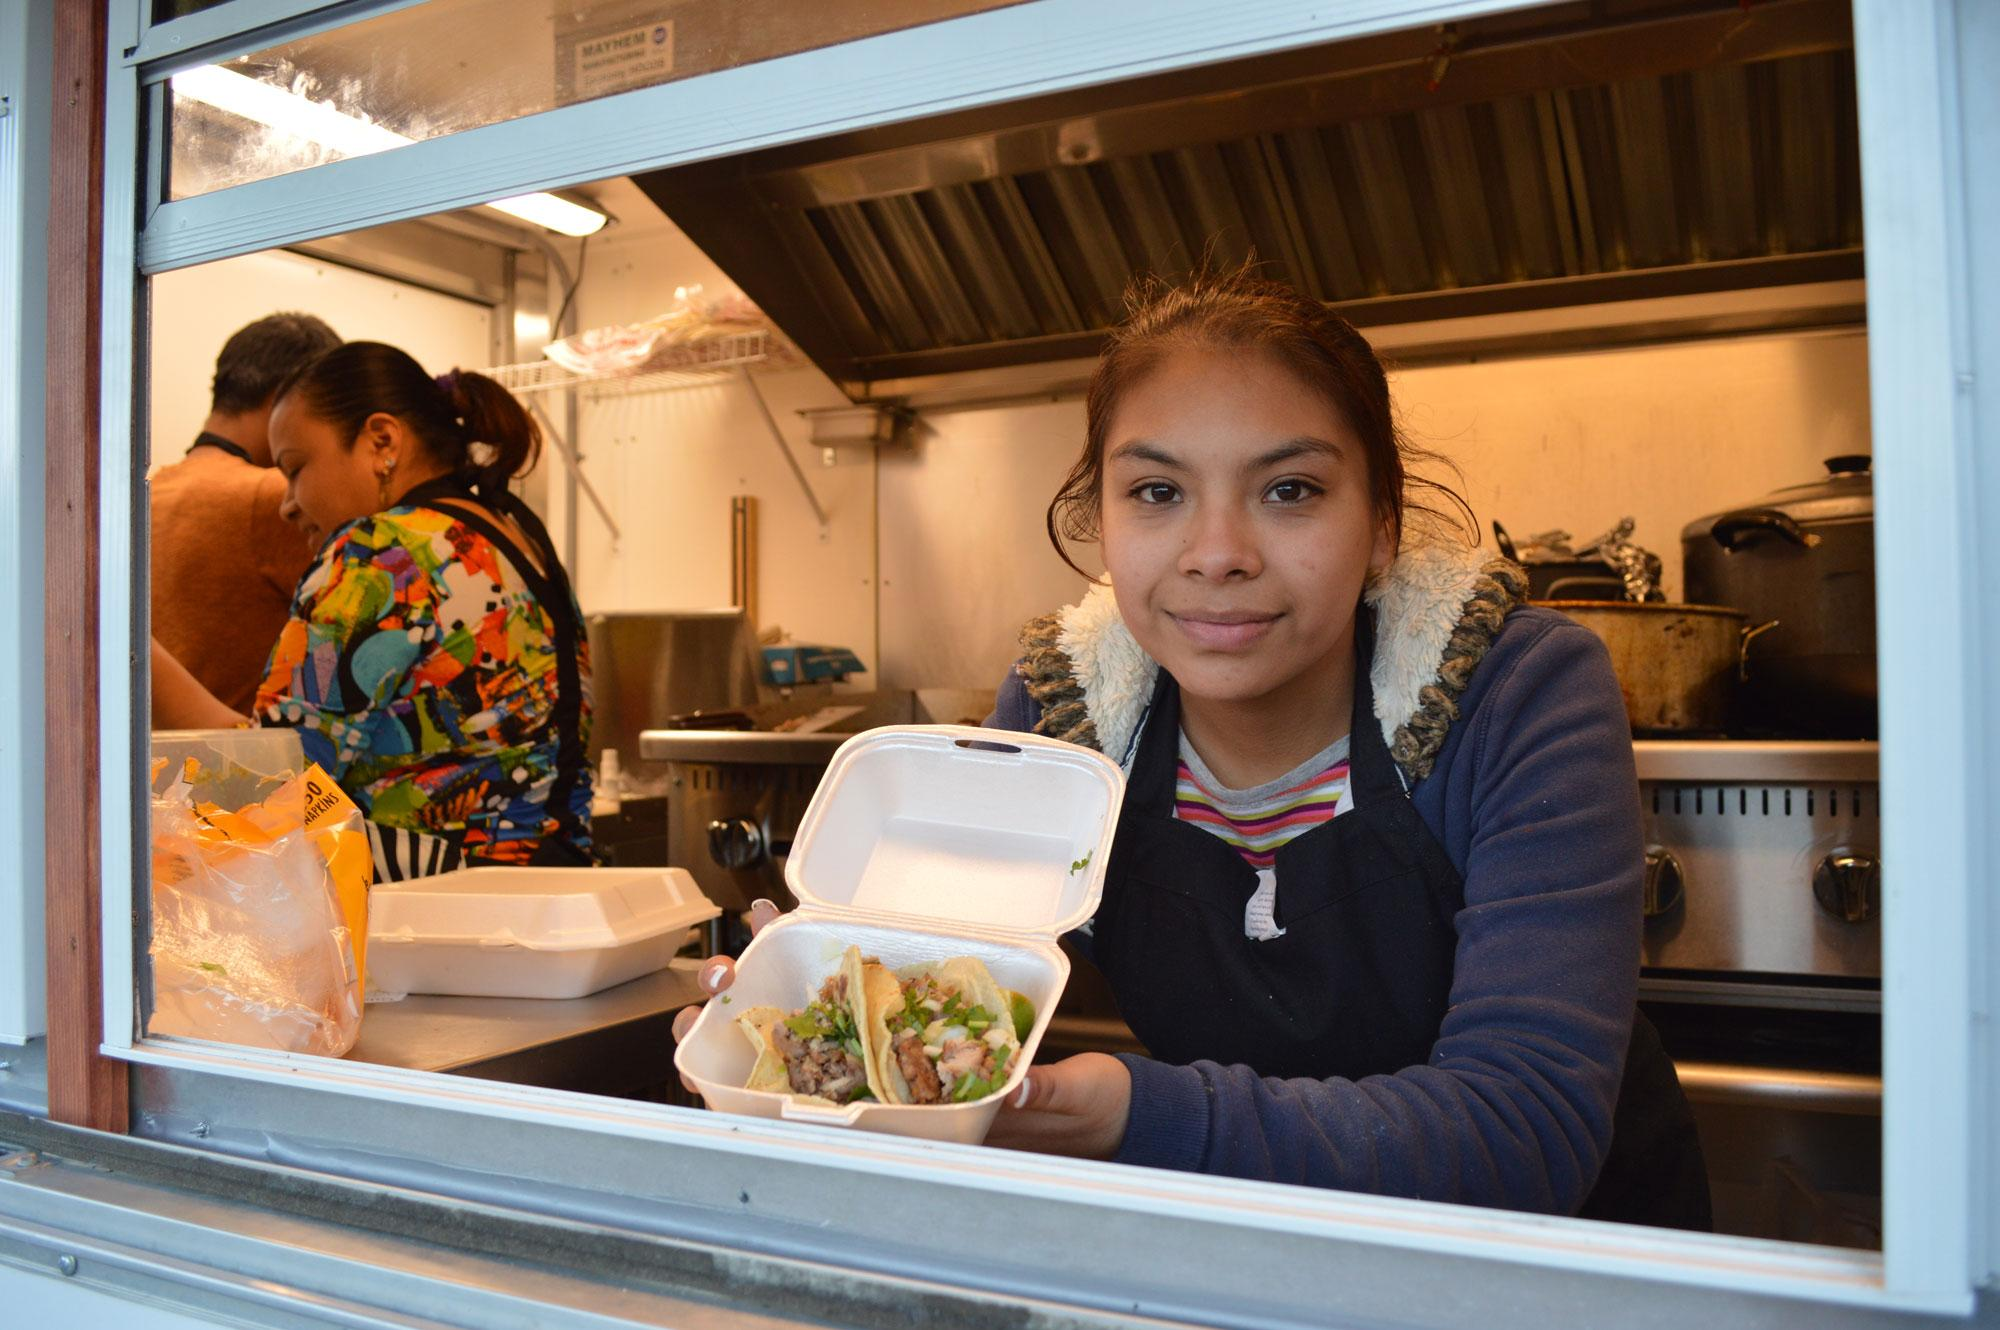 Miriam Hernandez opened the Taco King Taqueria last July and serves customers authentic Mexican food from her mother's recipes.